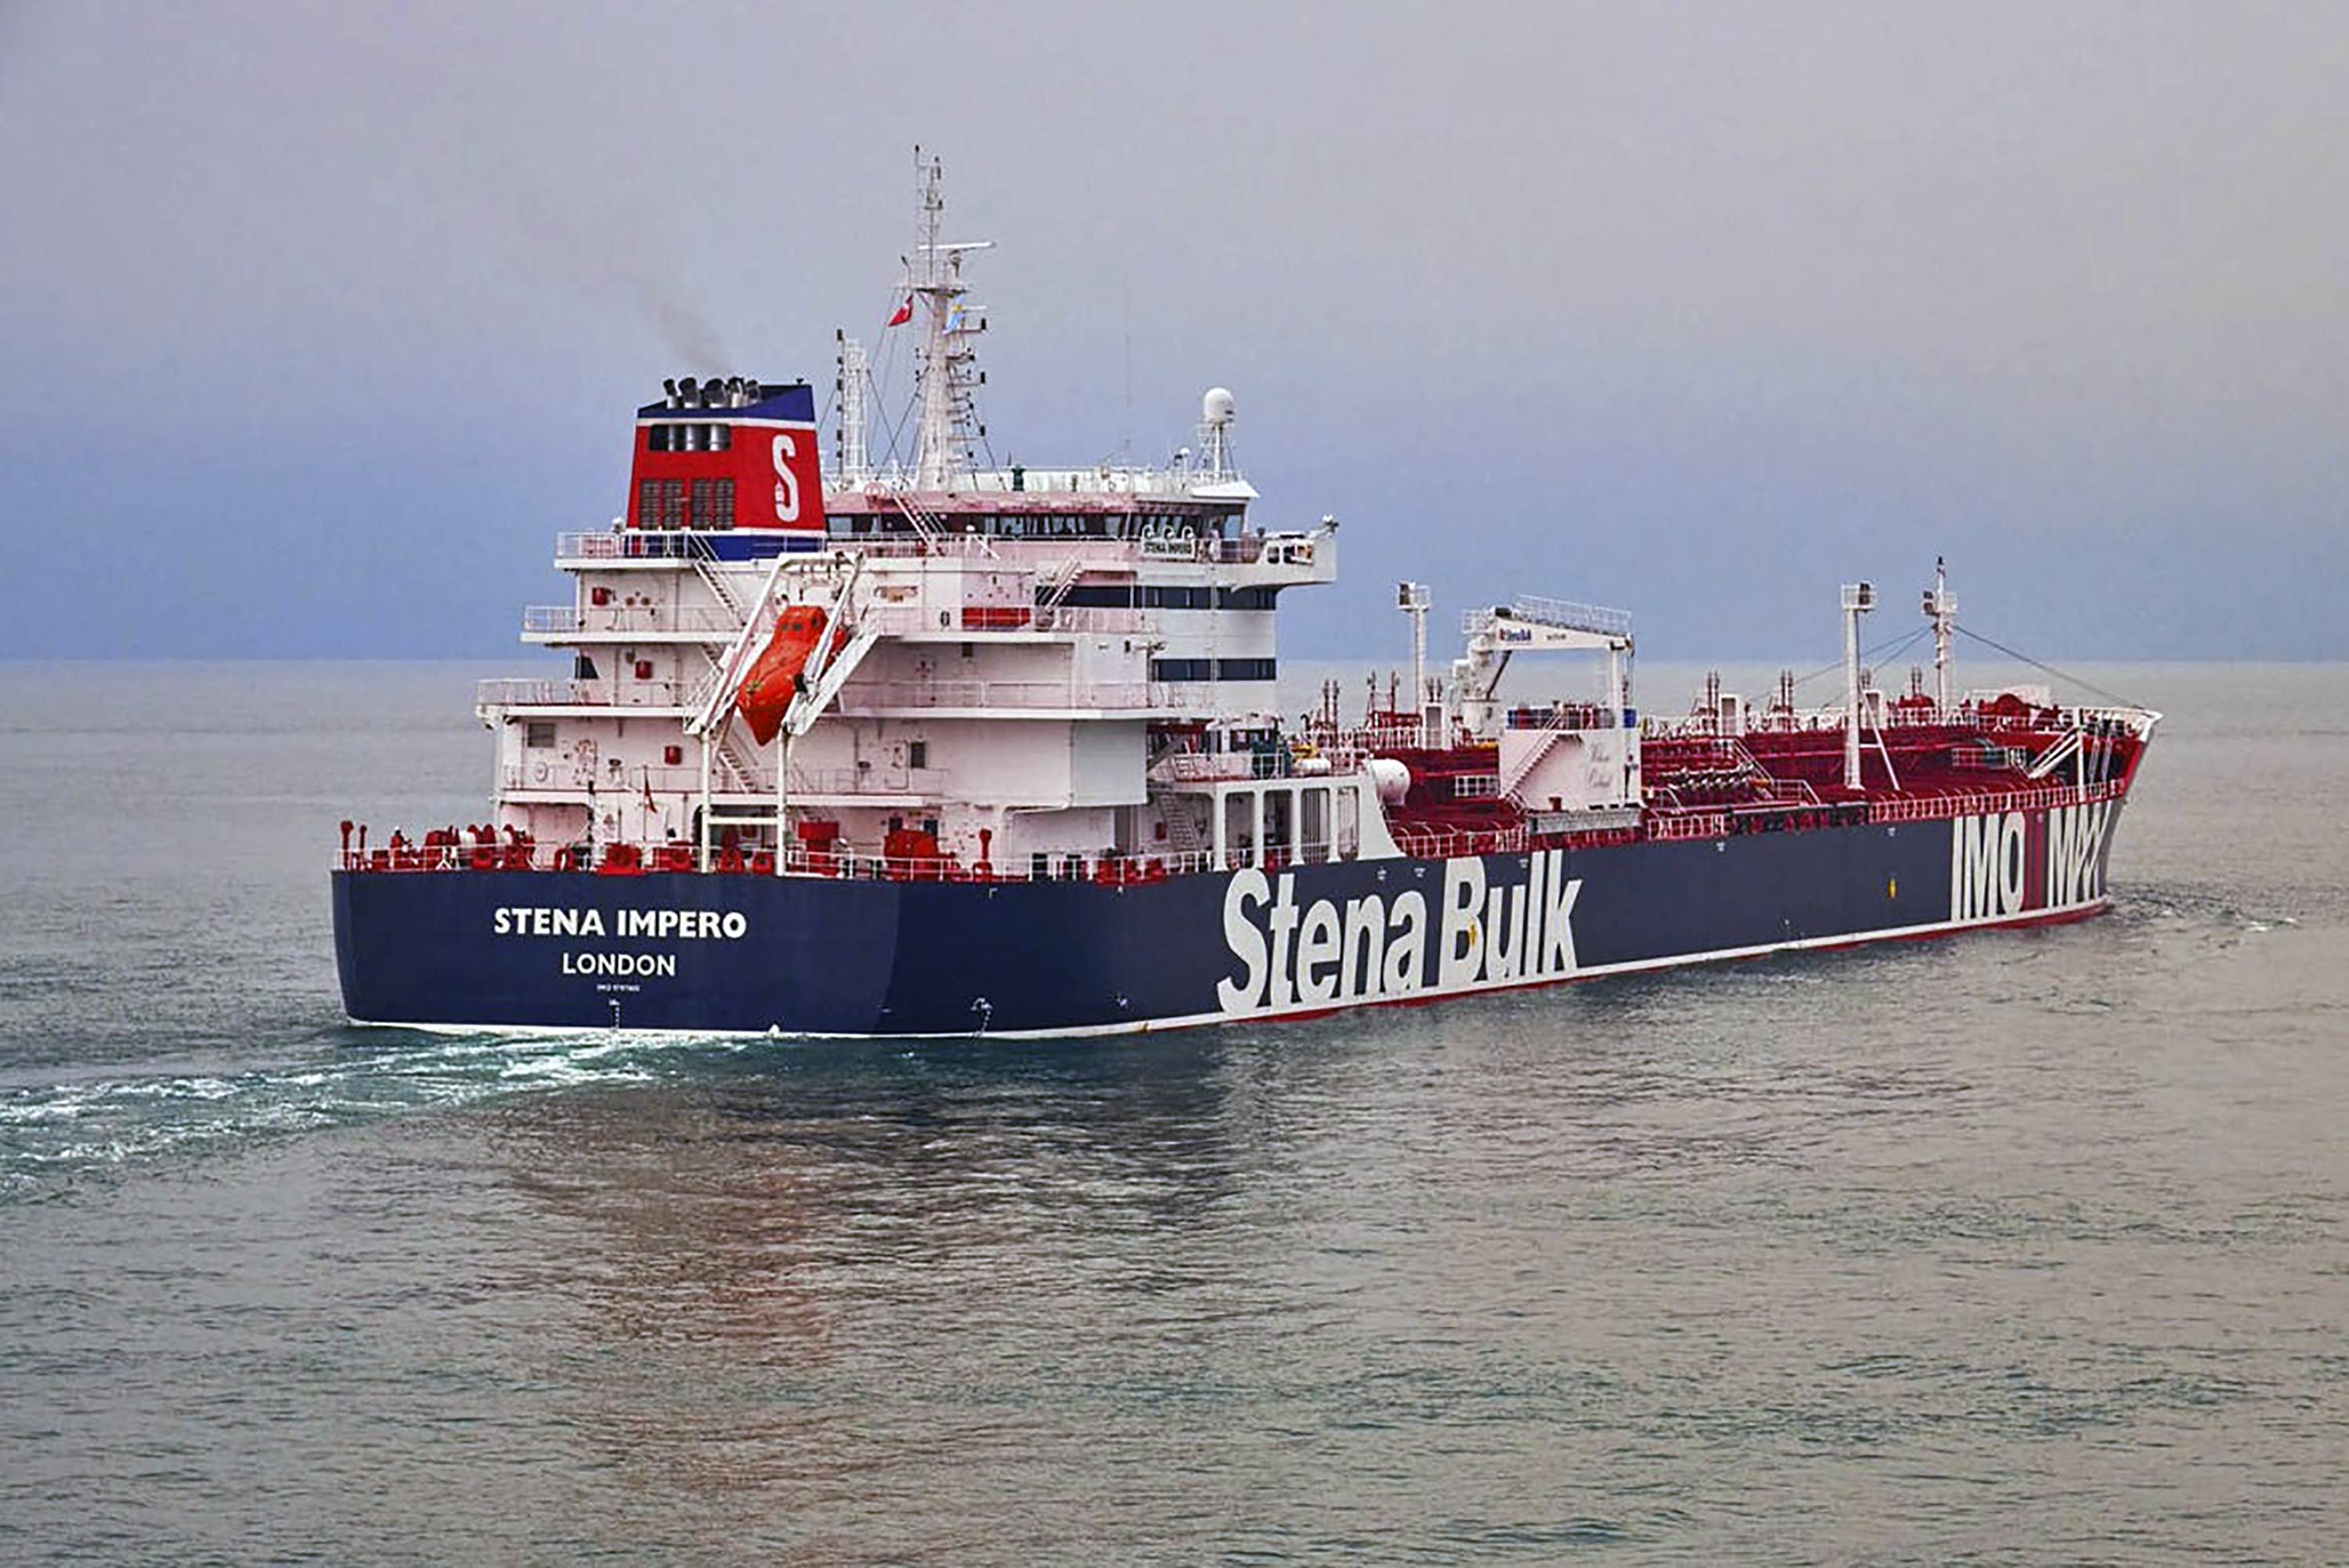 The Latest: Gulf incidents rattle shipping industry